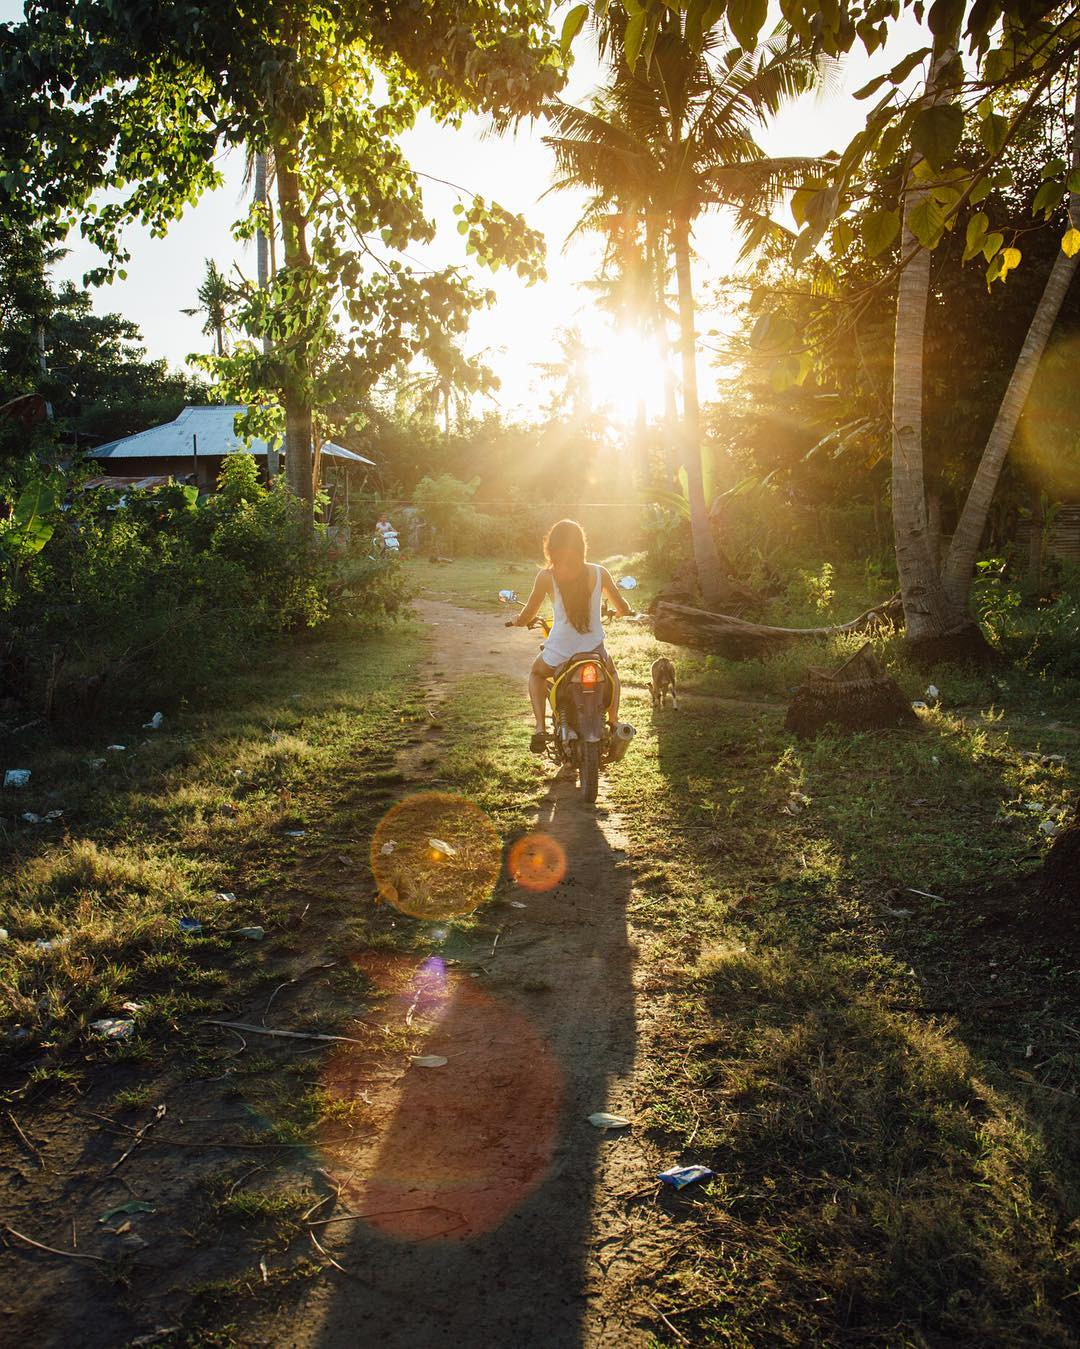 Missing the #ThePhilippinesProject and its golden sunsets a little extra today. The good news is, @chelseakauai will be joining us for our next #DoGood project and you can too!  We're giving away an all-expenses paid trip to join us, Chelsea +...